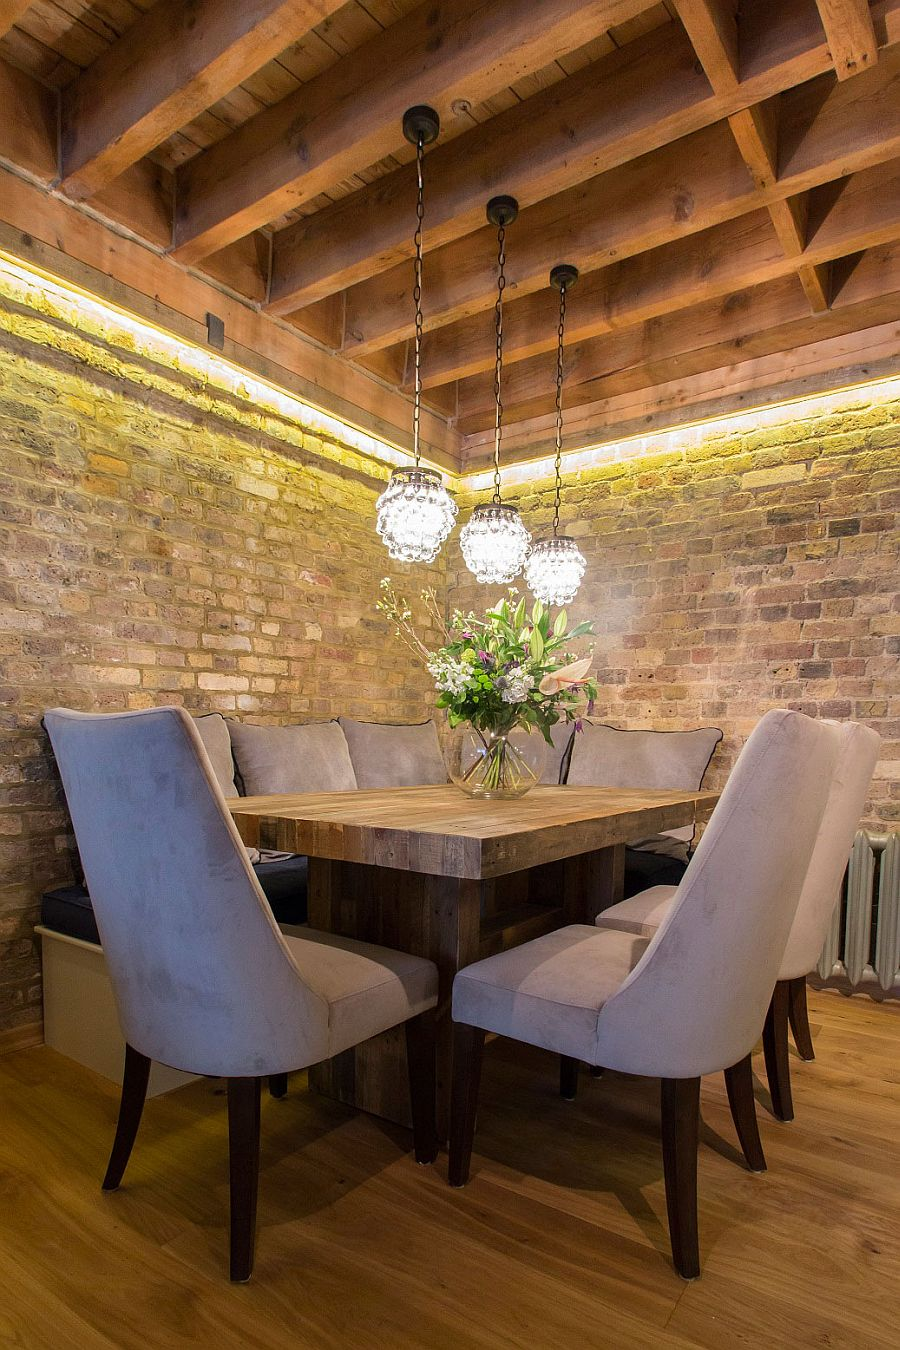 Rustic dining space with brick walls and custom wooden dining table